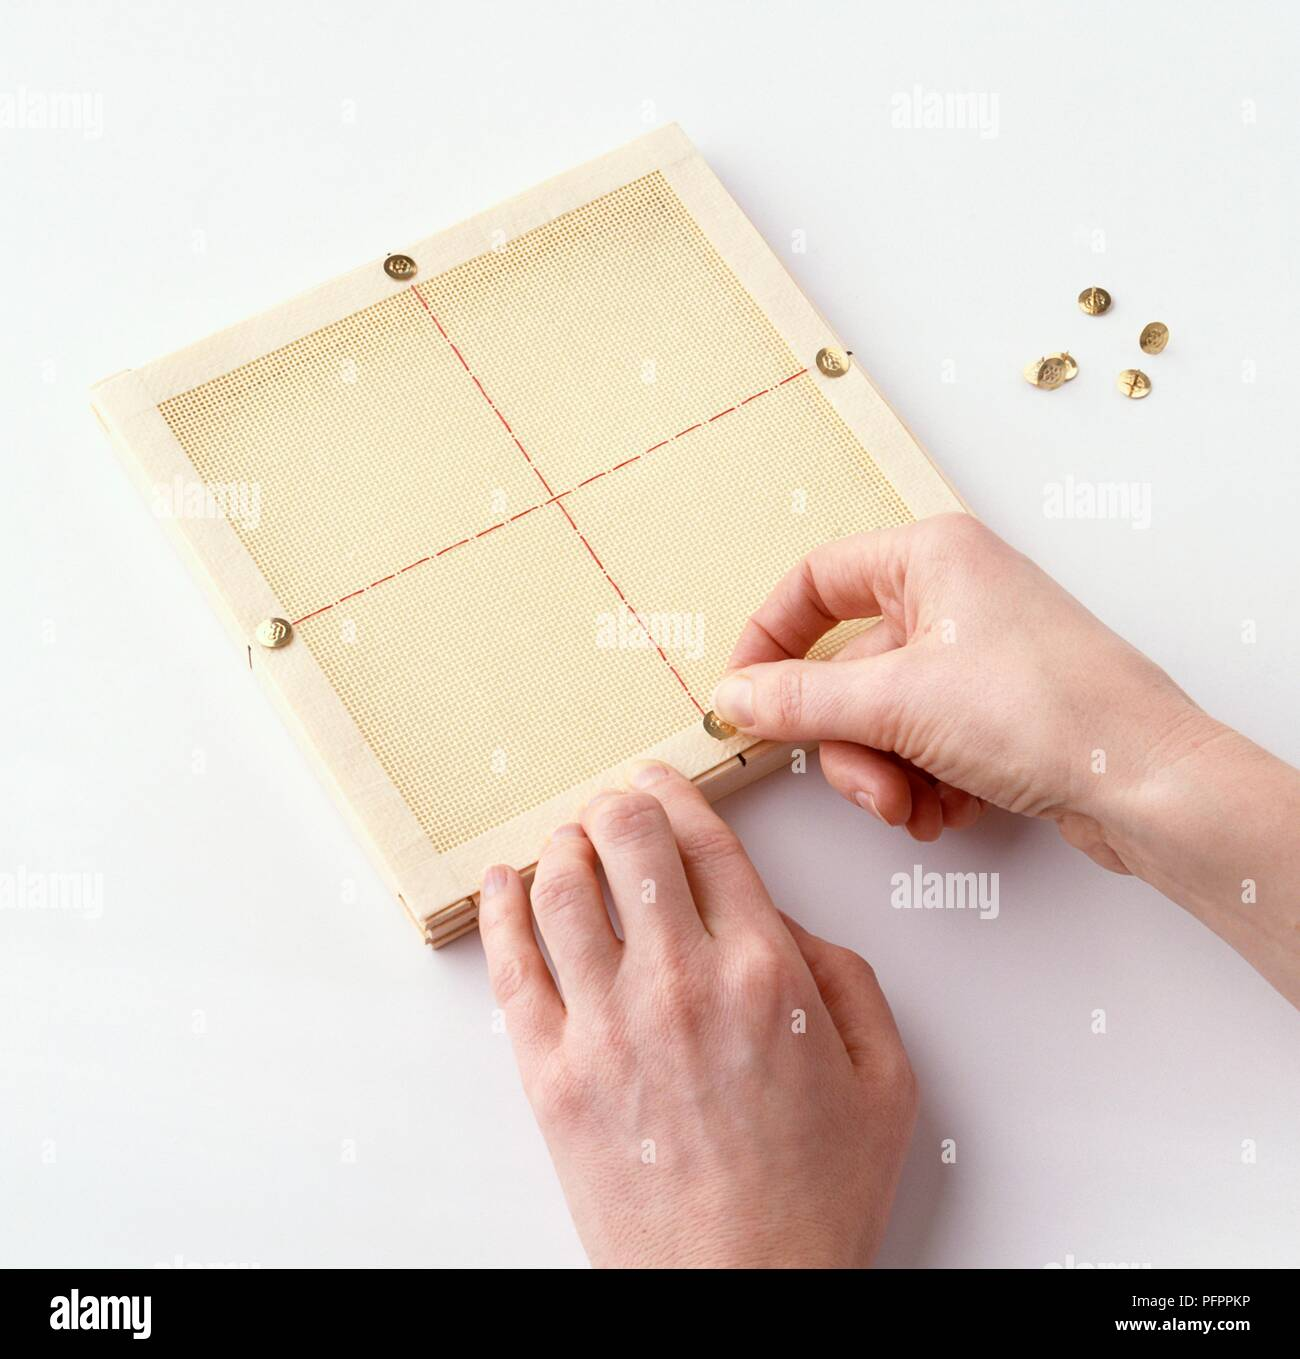 Using push pins to attach canvas to artist's frame - Stock Image